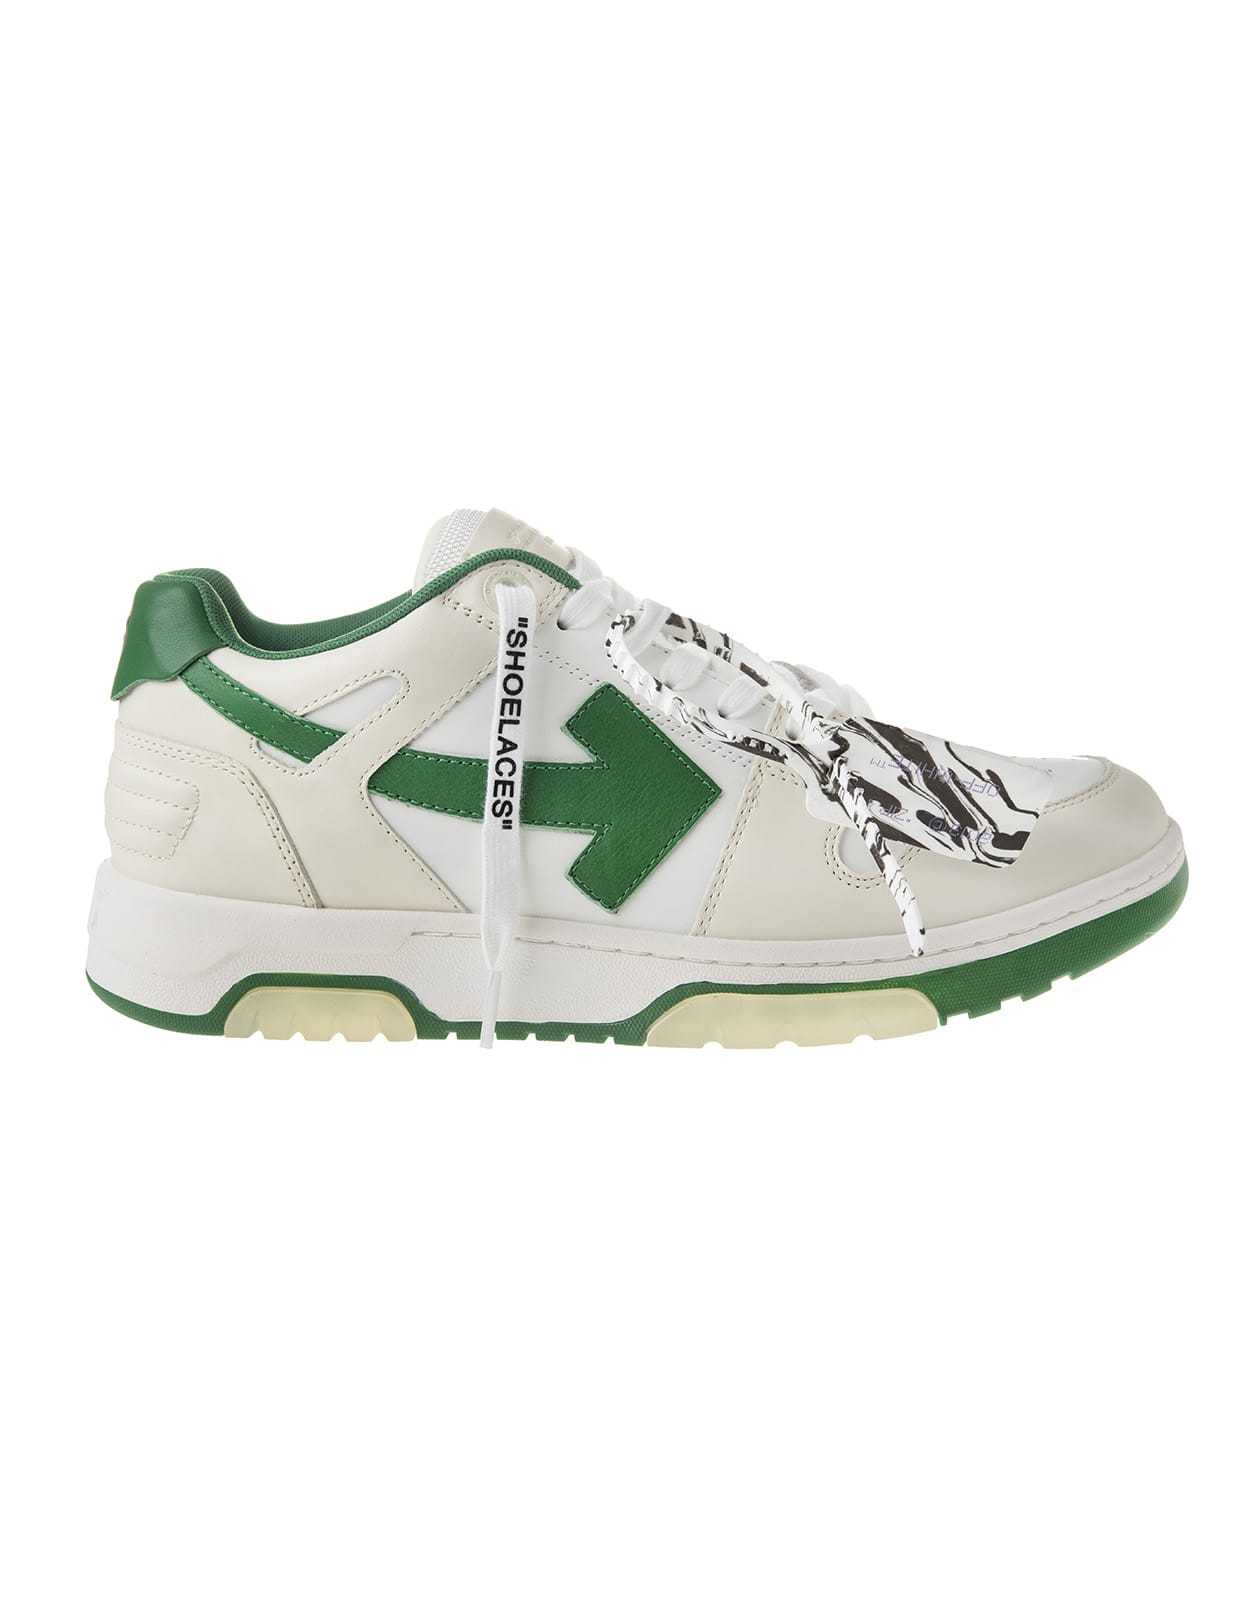 Off-White WHITE AND GREEN MAN OUT OF OFFICE LOW SNEAKERS